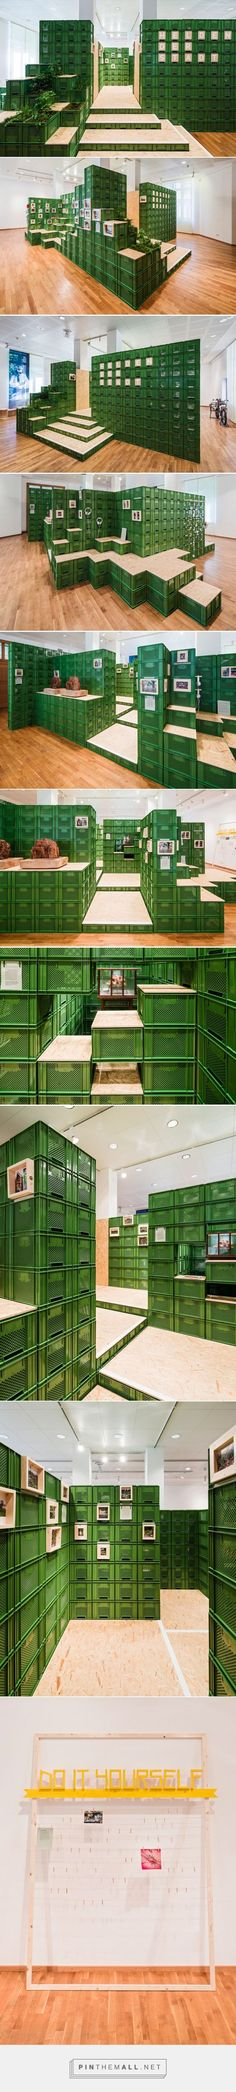 yalla yalla! stacks vegetable crates for exhibition in germany - created via http://pinthemall.net: